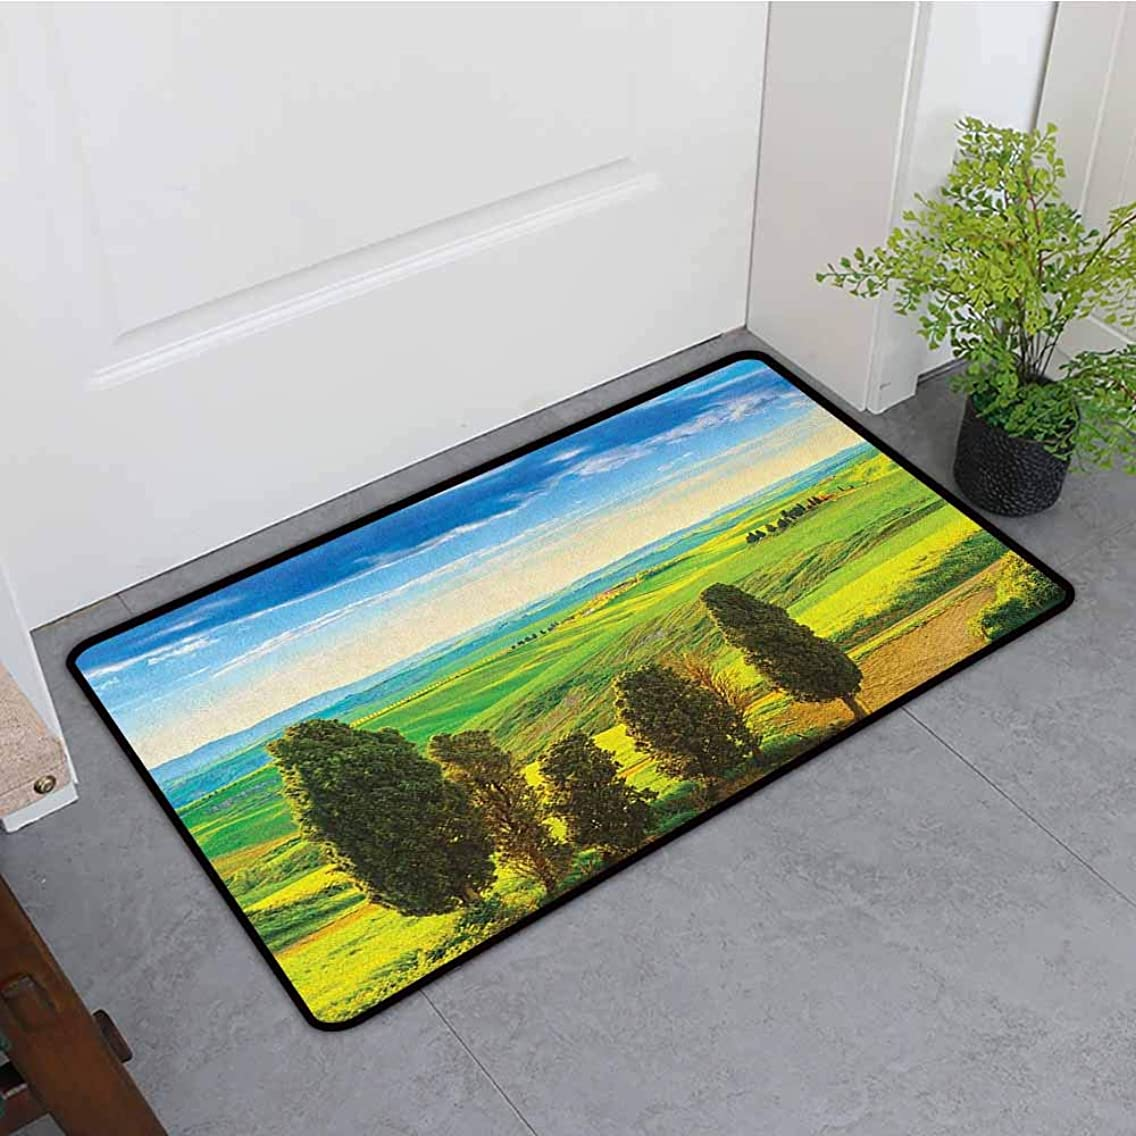 ONECUTE Custom Doormat,Nature Rural Sunset in Italy Countryside with Trees Fresh Meadows and Clear Sky Image Print,Anti-Slip Doormat Footpad Machine Washable,31